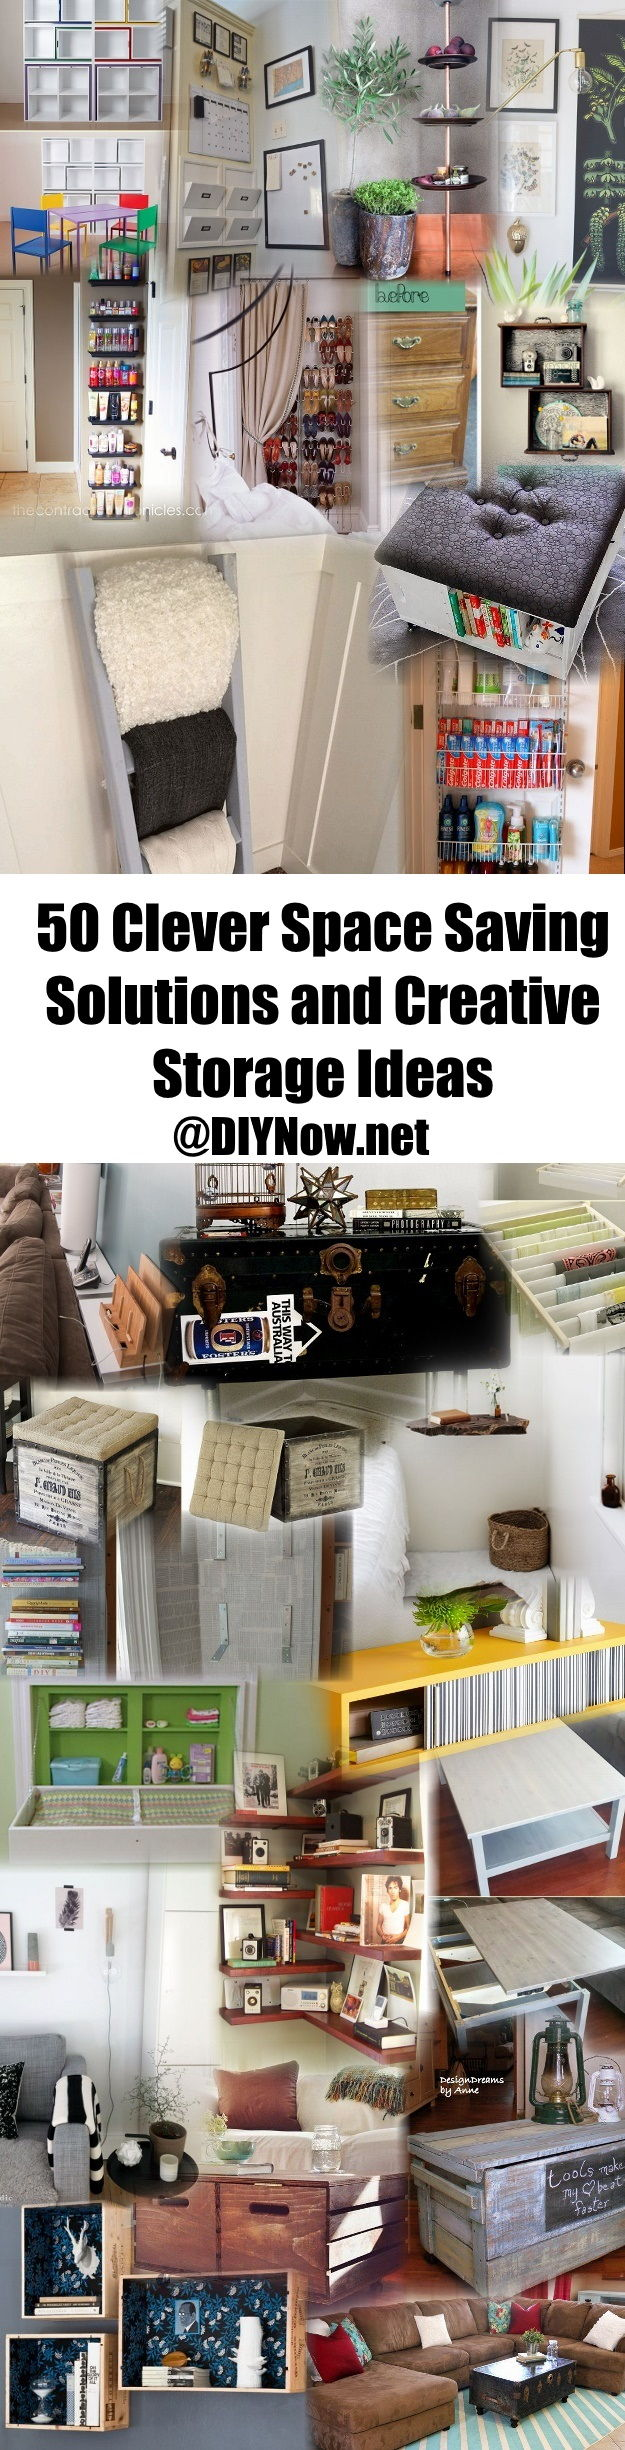 50 Clever Space Saving Solutions and Creative Storage Ideas